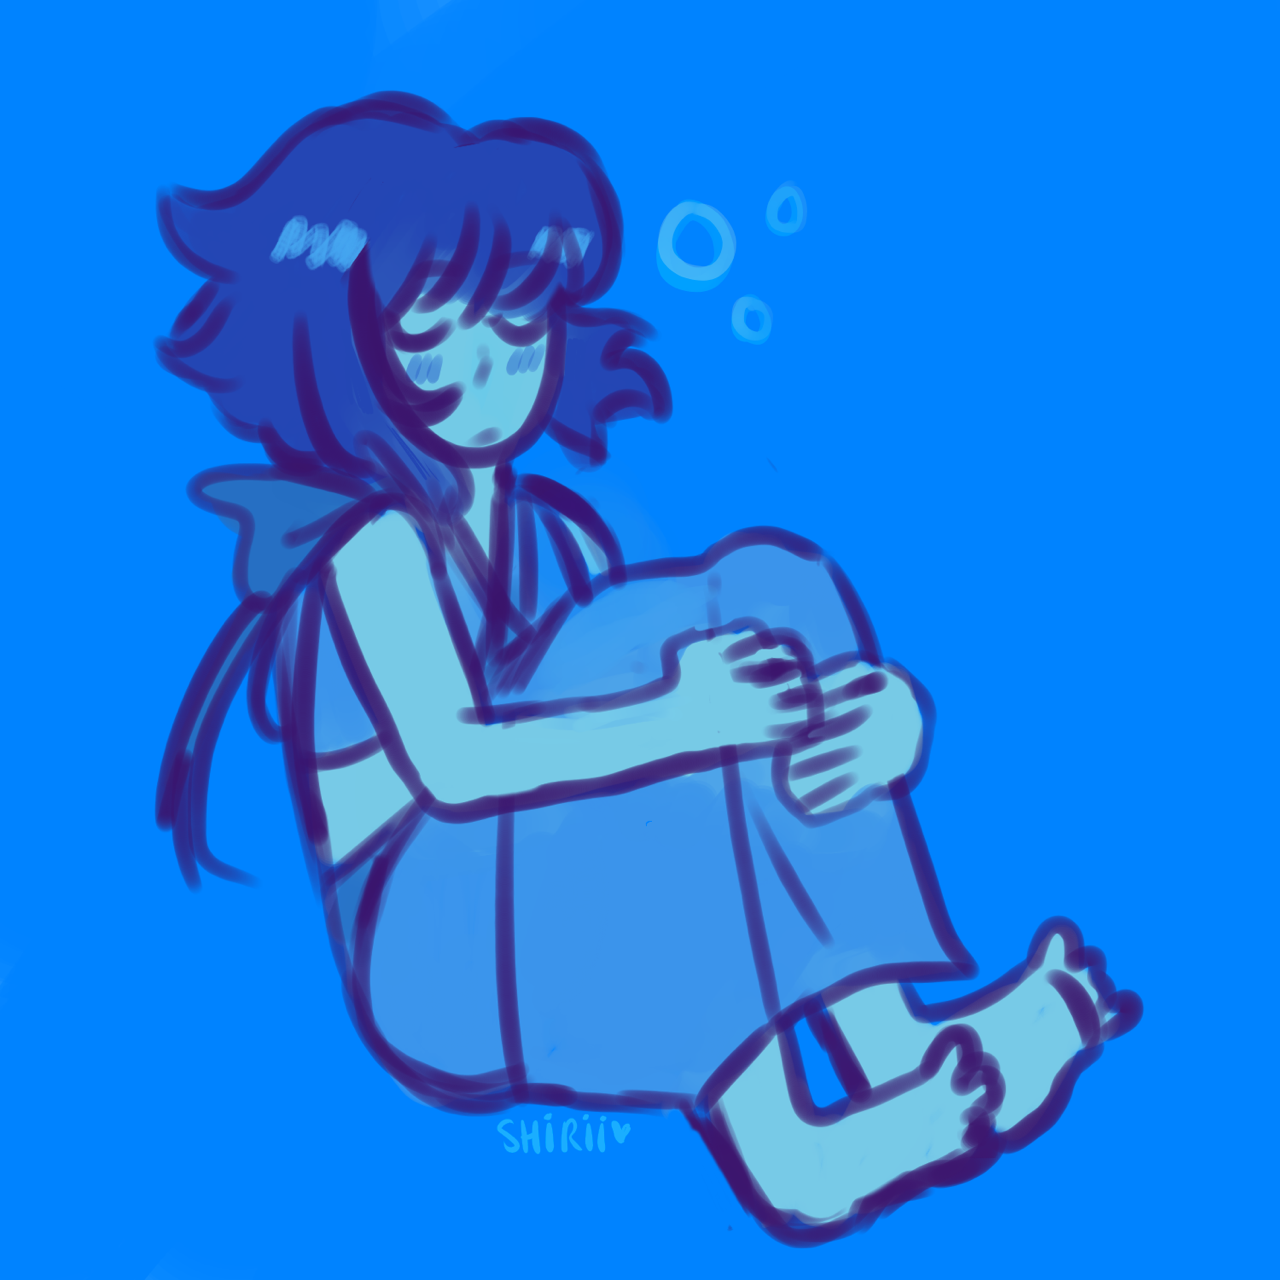 my water wife 💙